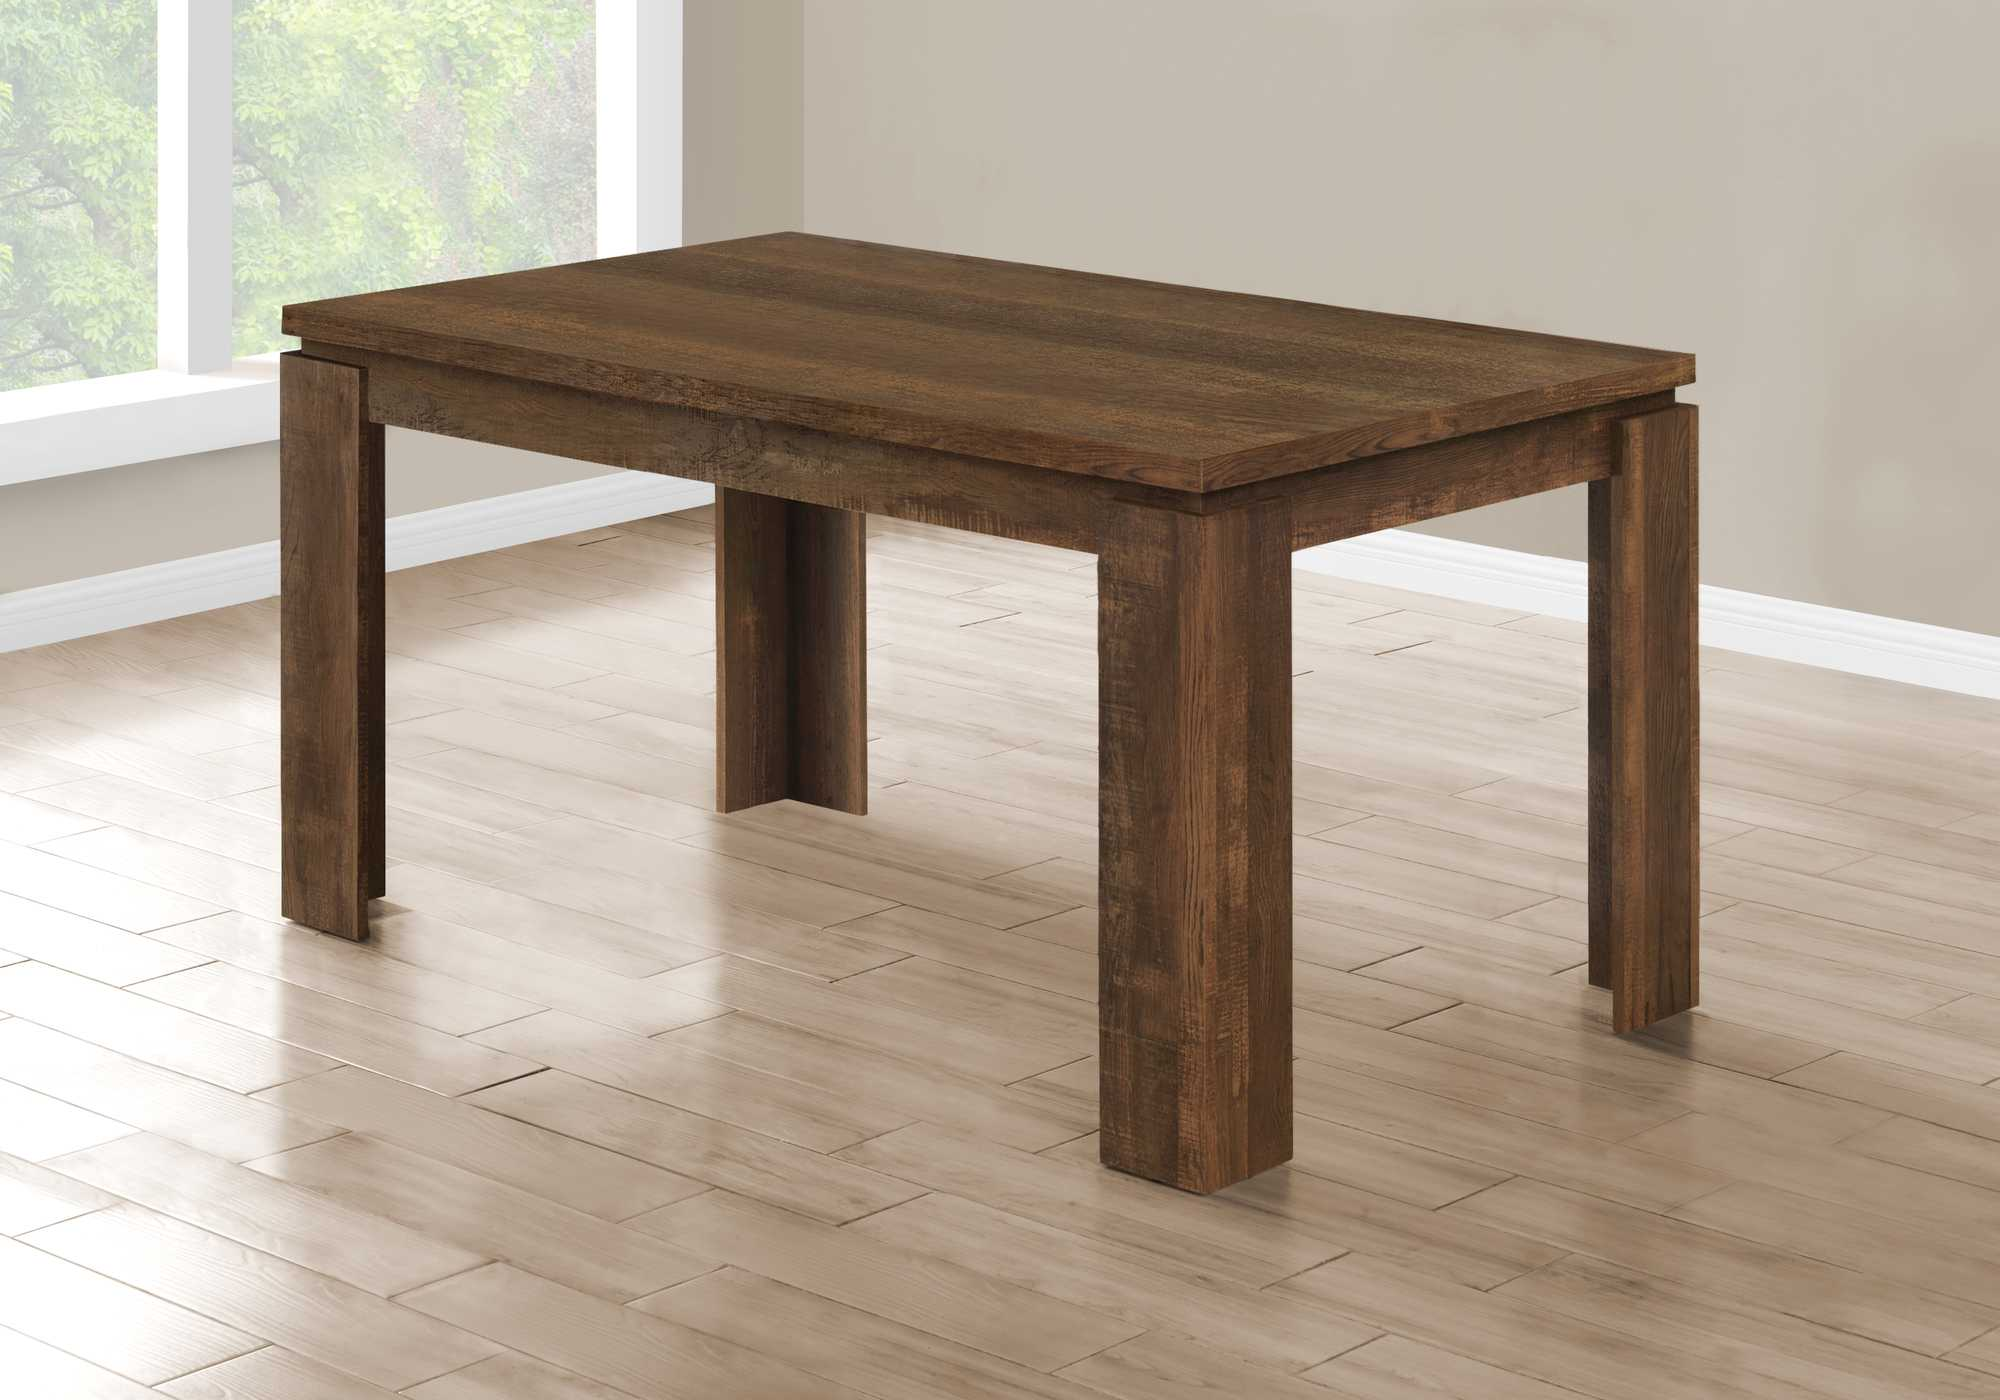 "35'.5"" x 59"" x 30'.5"" Brown, Reclaimed Wood Look - Dining Table"